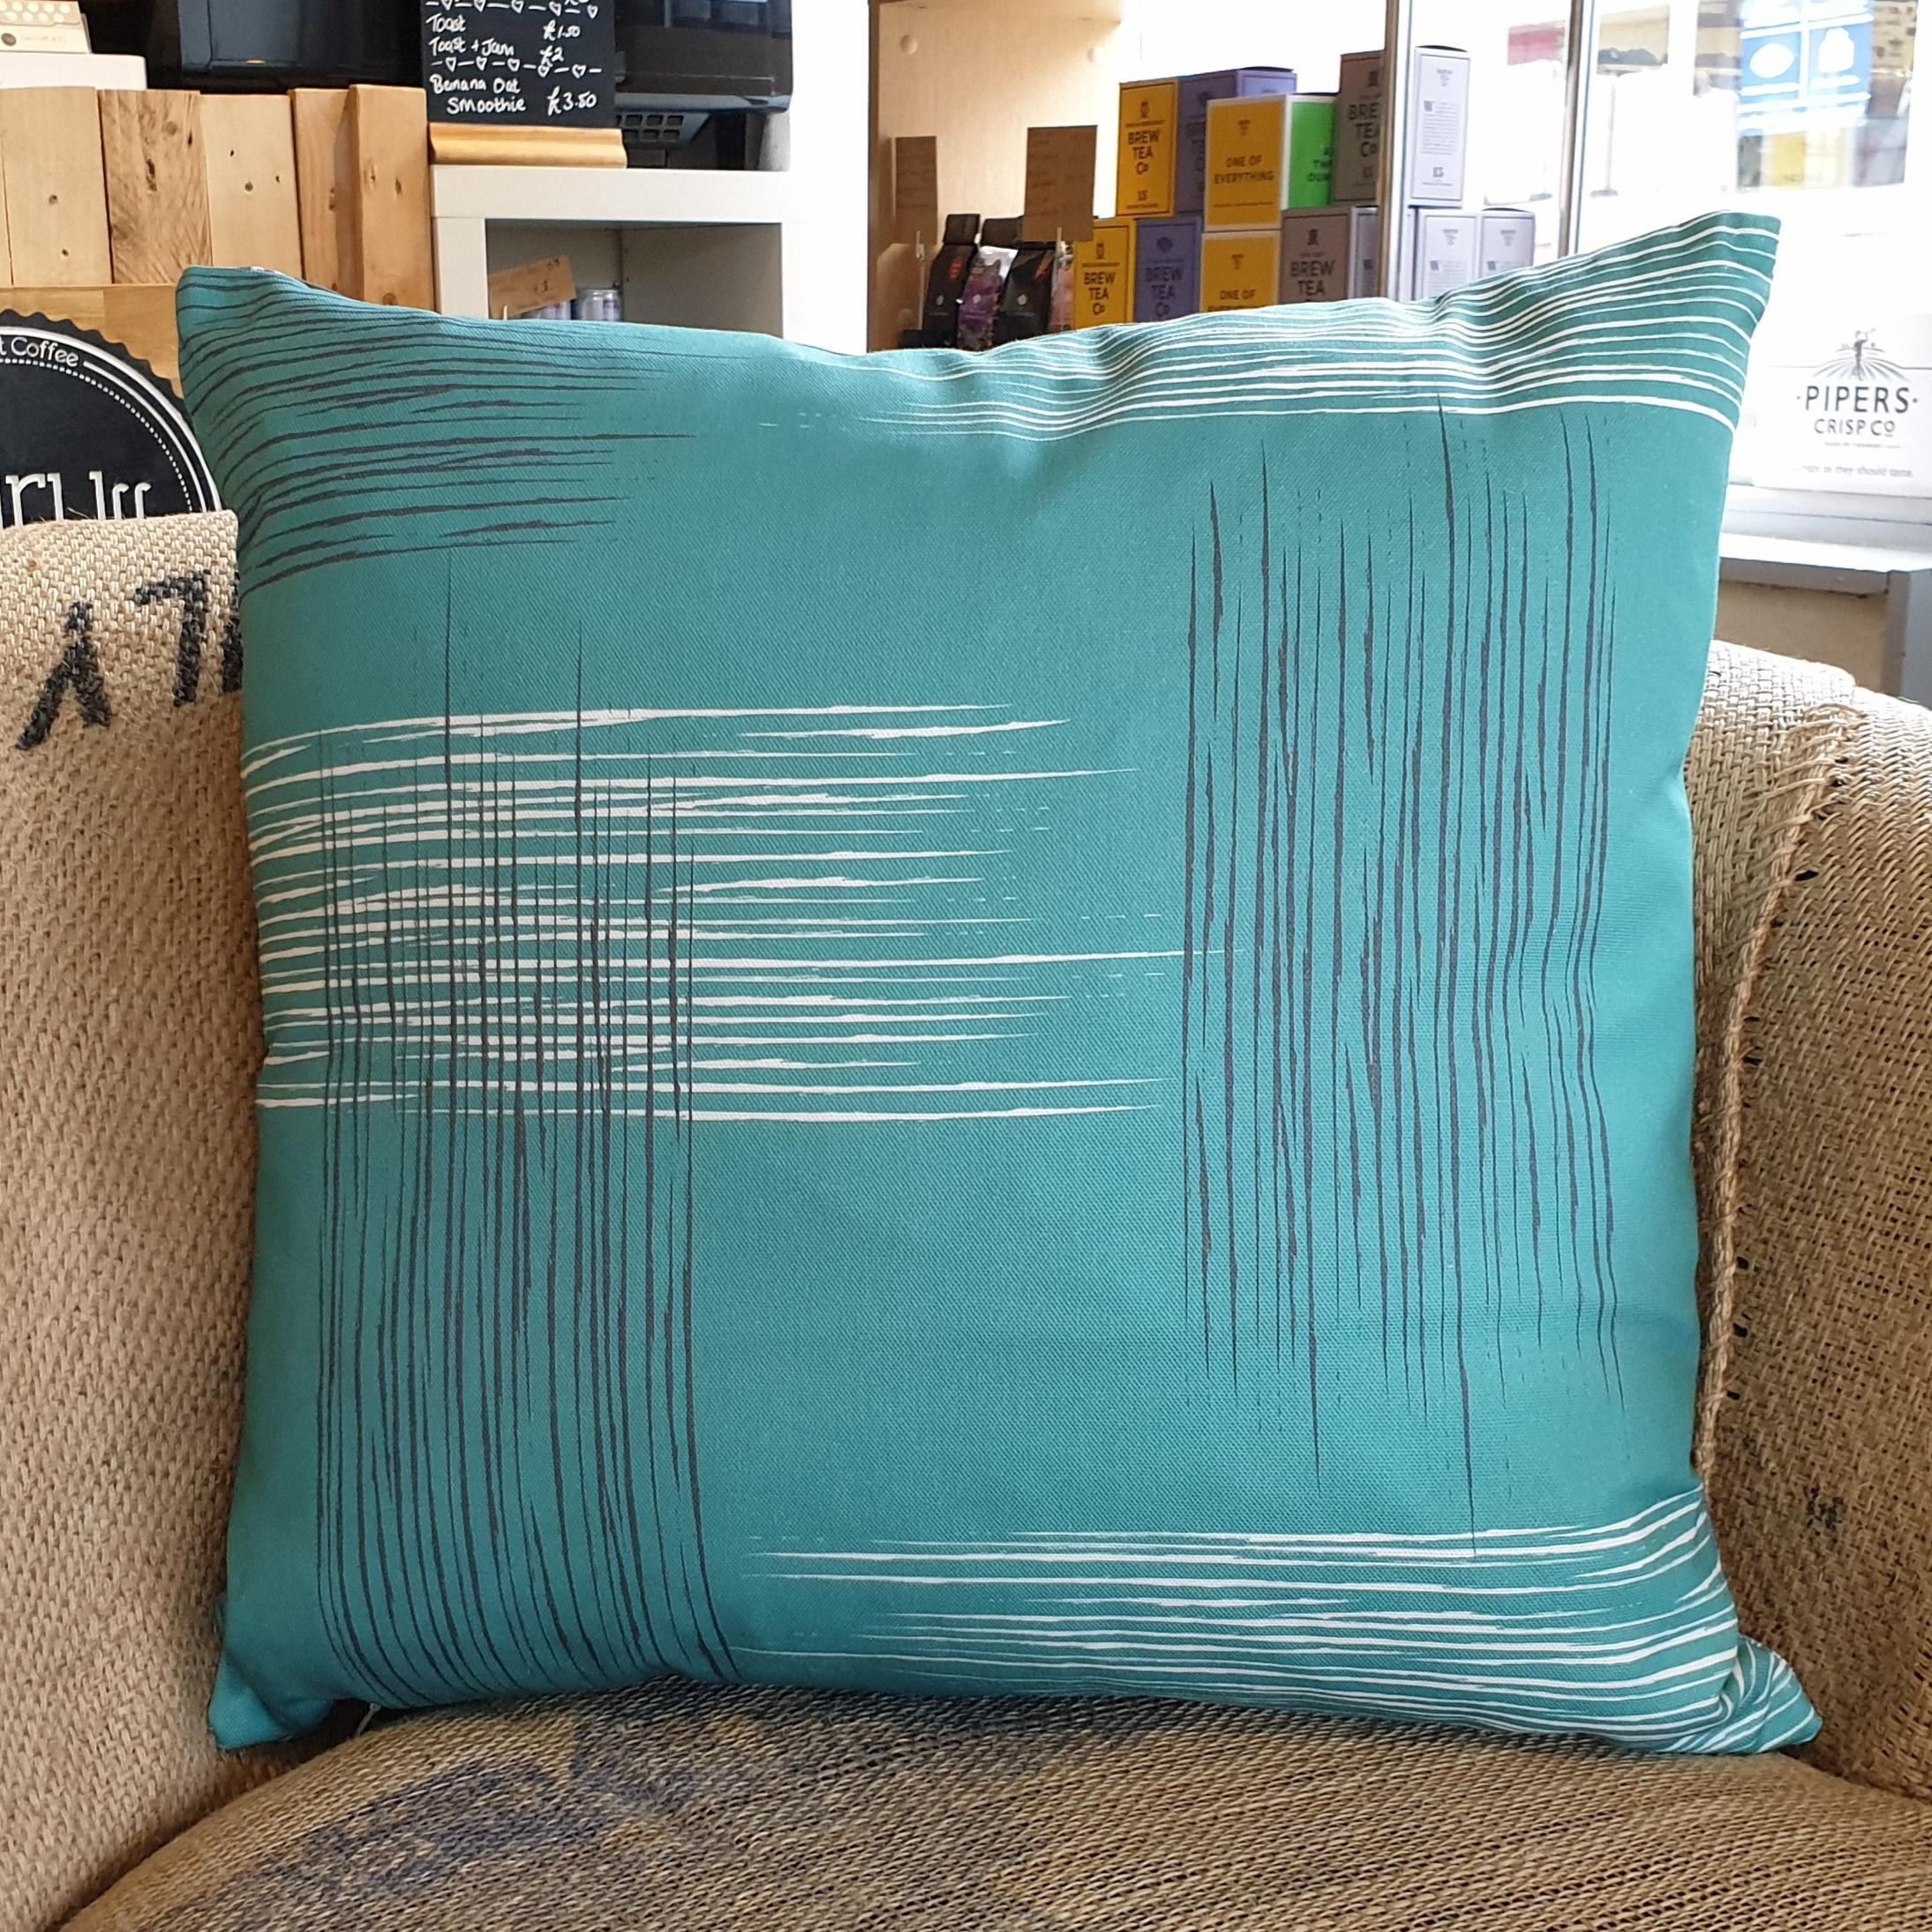 Double-sided aqua teal 45cm square retro themed cushion with artistic grey and white shards designed by thetinkan. Available with an optional luxury cushion inner pad. VIEW PRODUCT >>